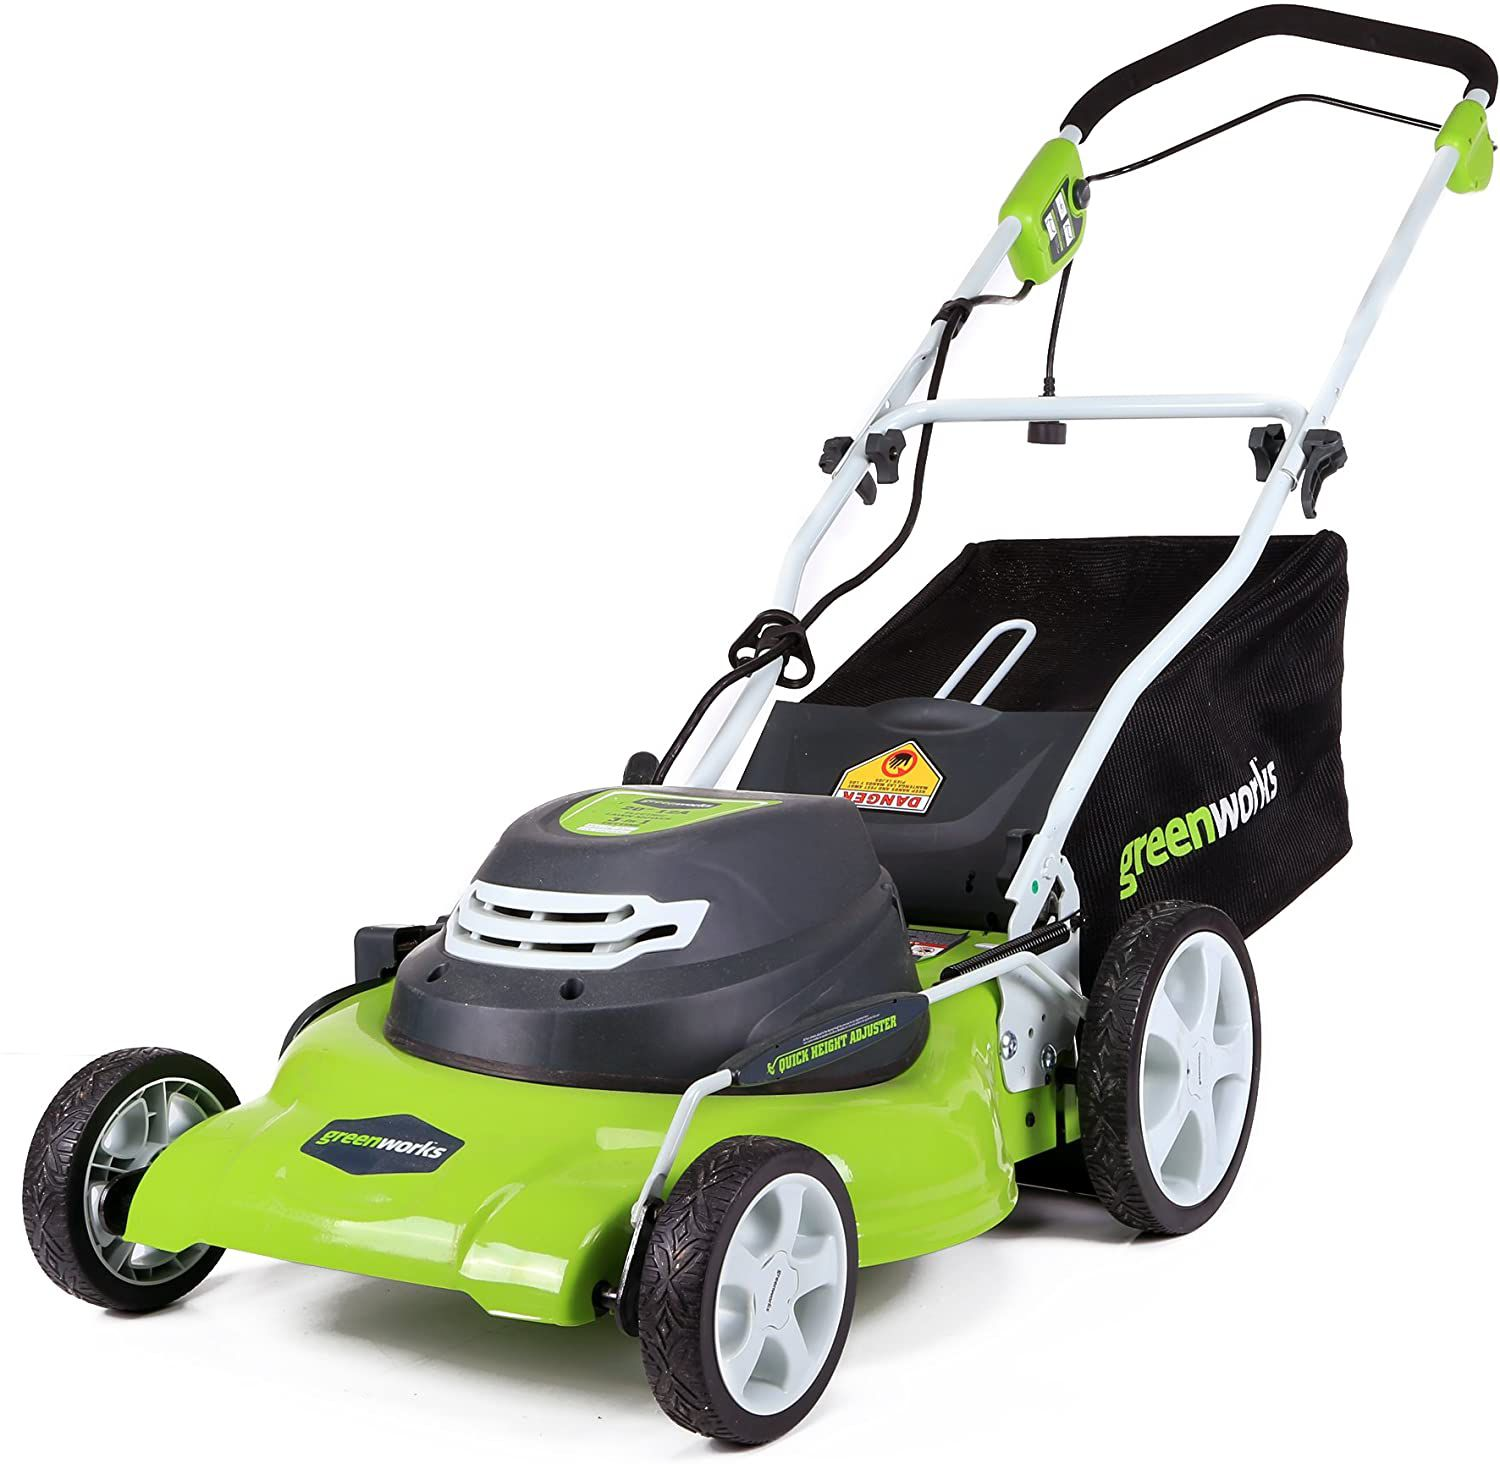 Greenworks 12 Amp 20-Inch 3-in-1Electric Corded Lawn Mower